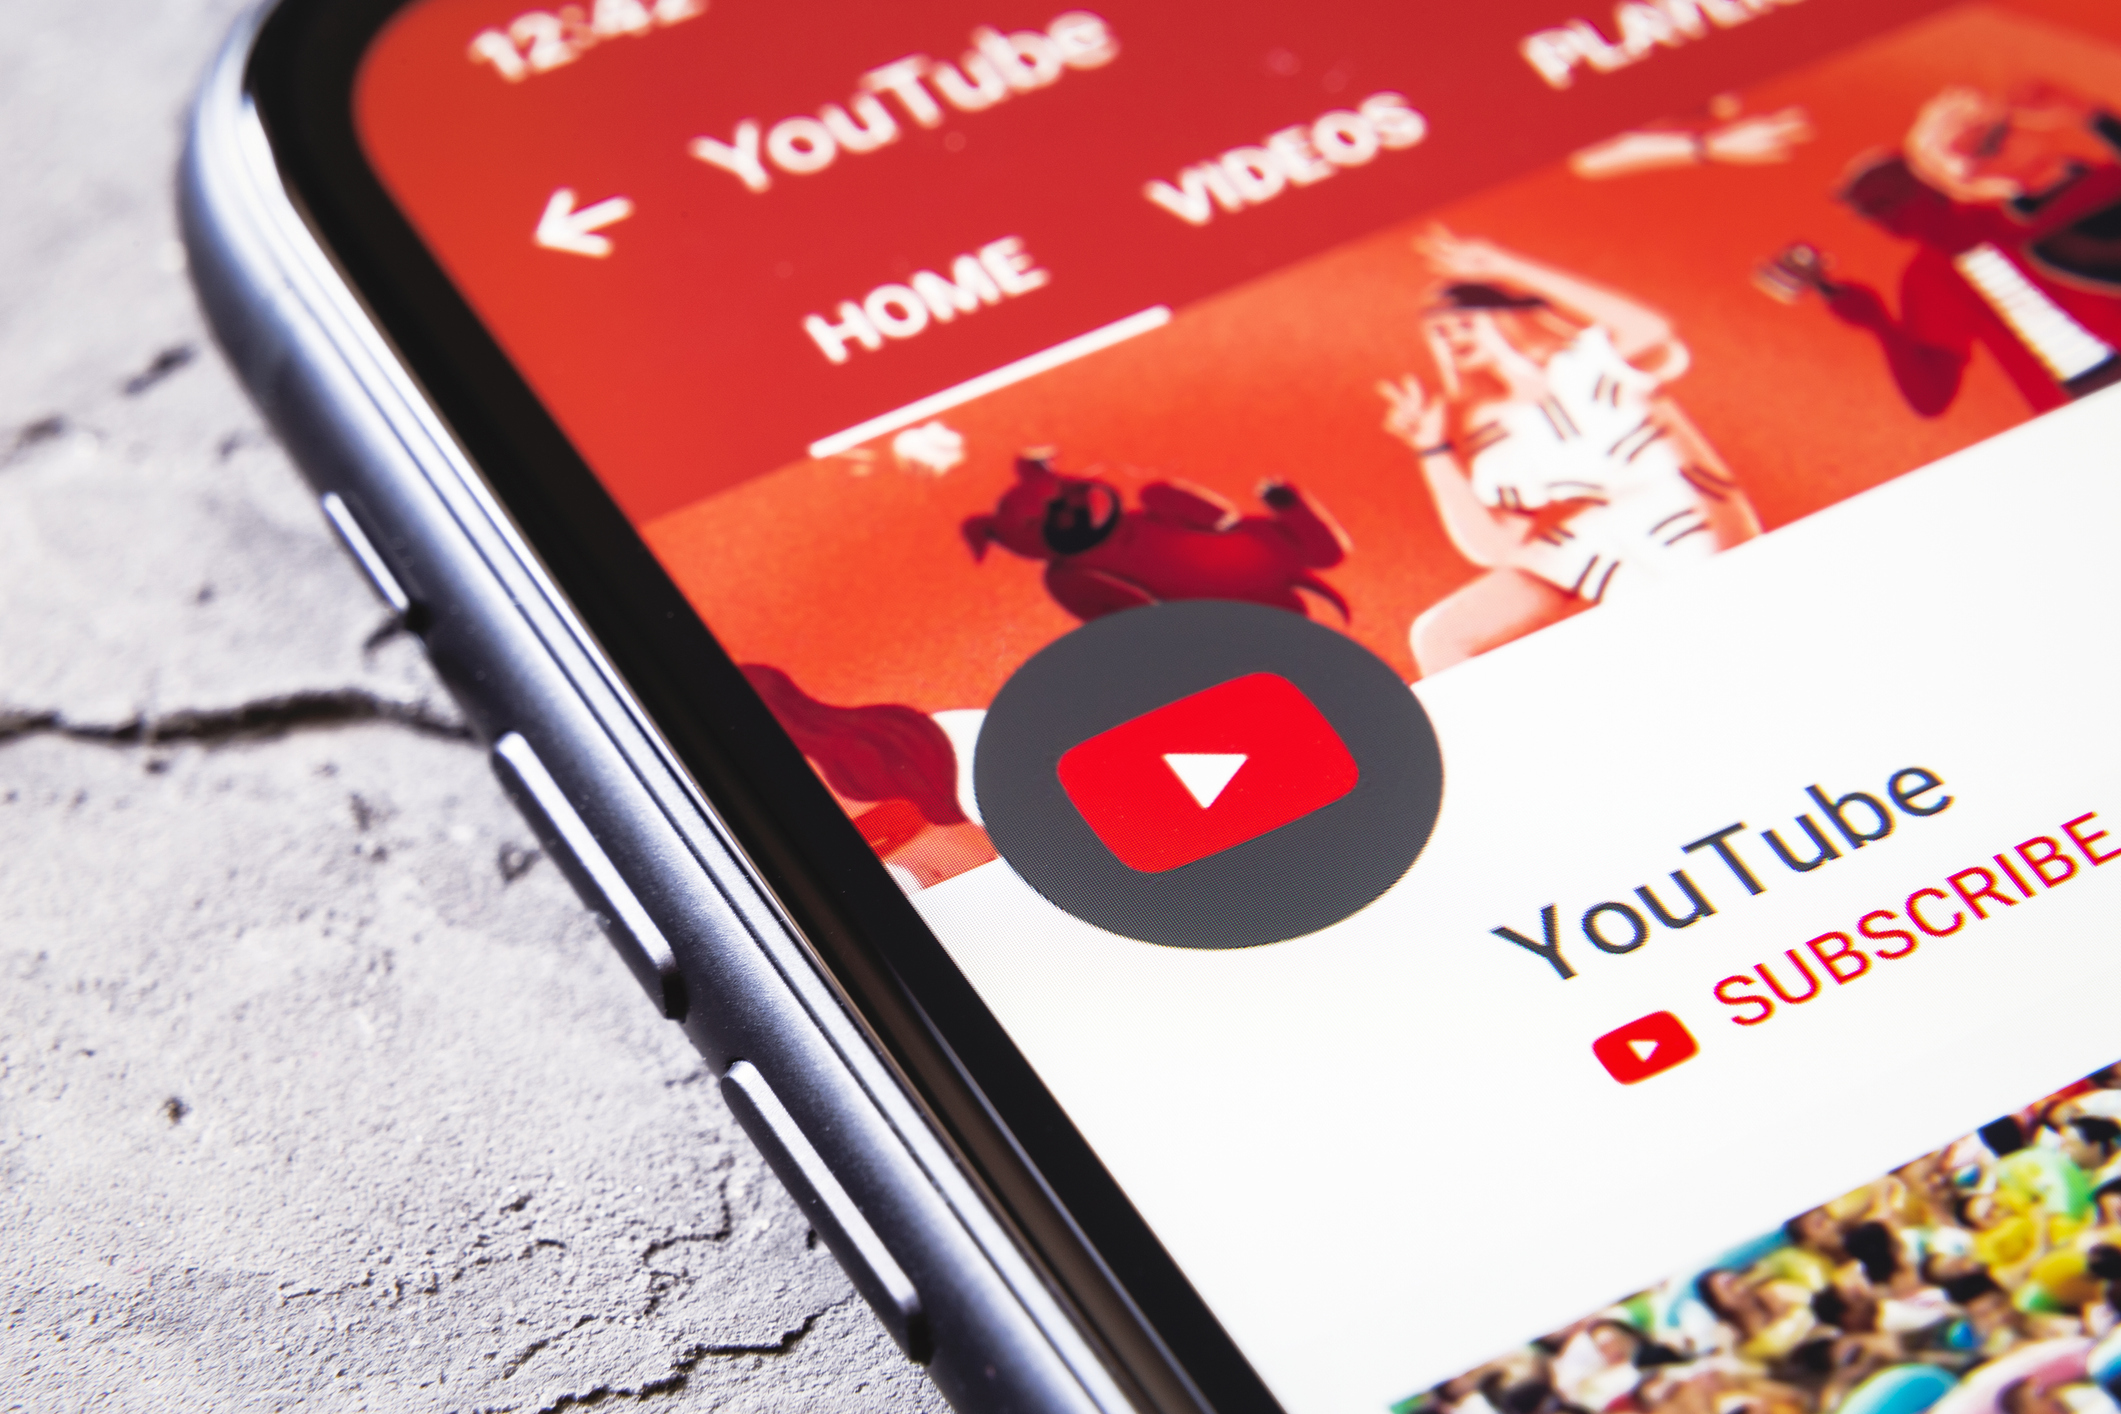 Top 10 Most Subscribed Youtube Channels That You May Not Expect